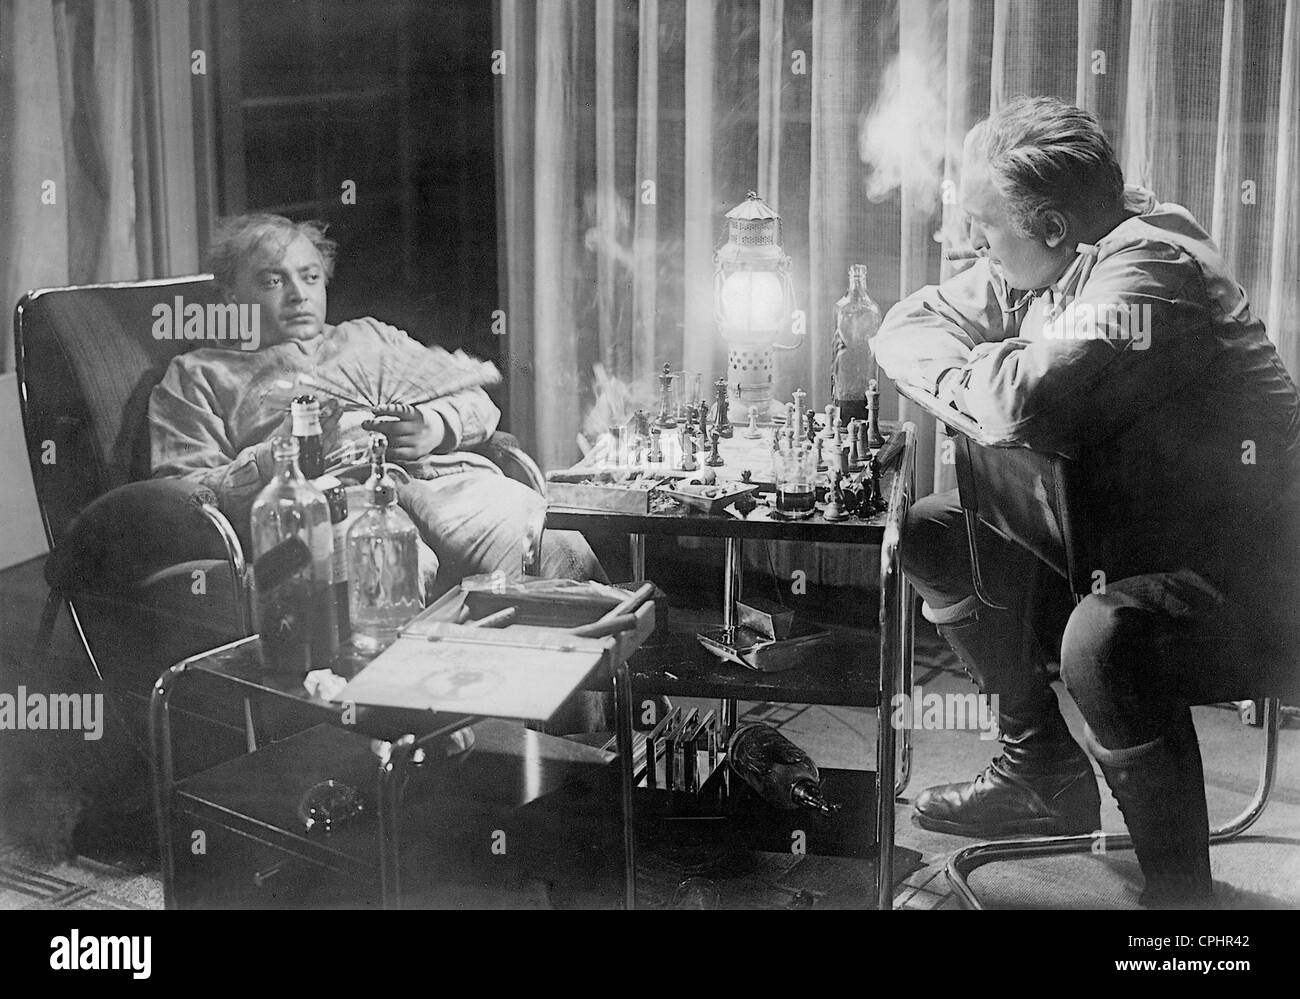 Peter Lorre and Hans Albers in 'F.P.1 Doesn't Answer', 1932 - Stock Image